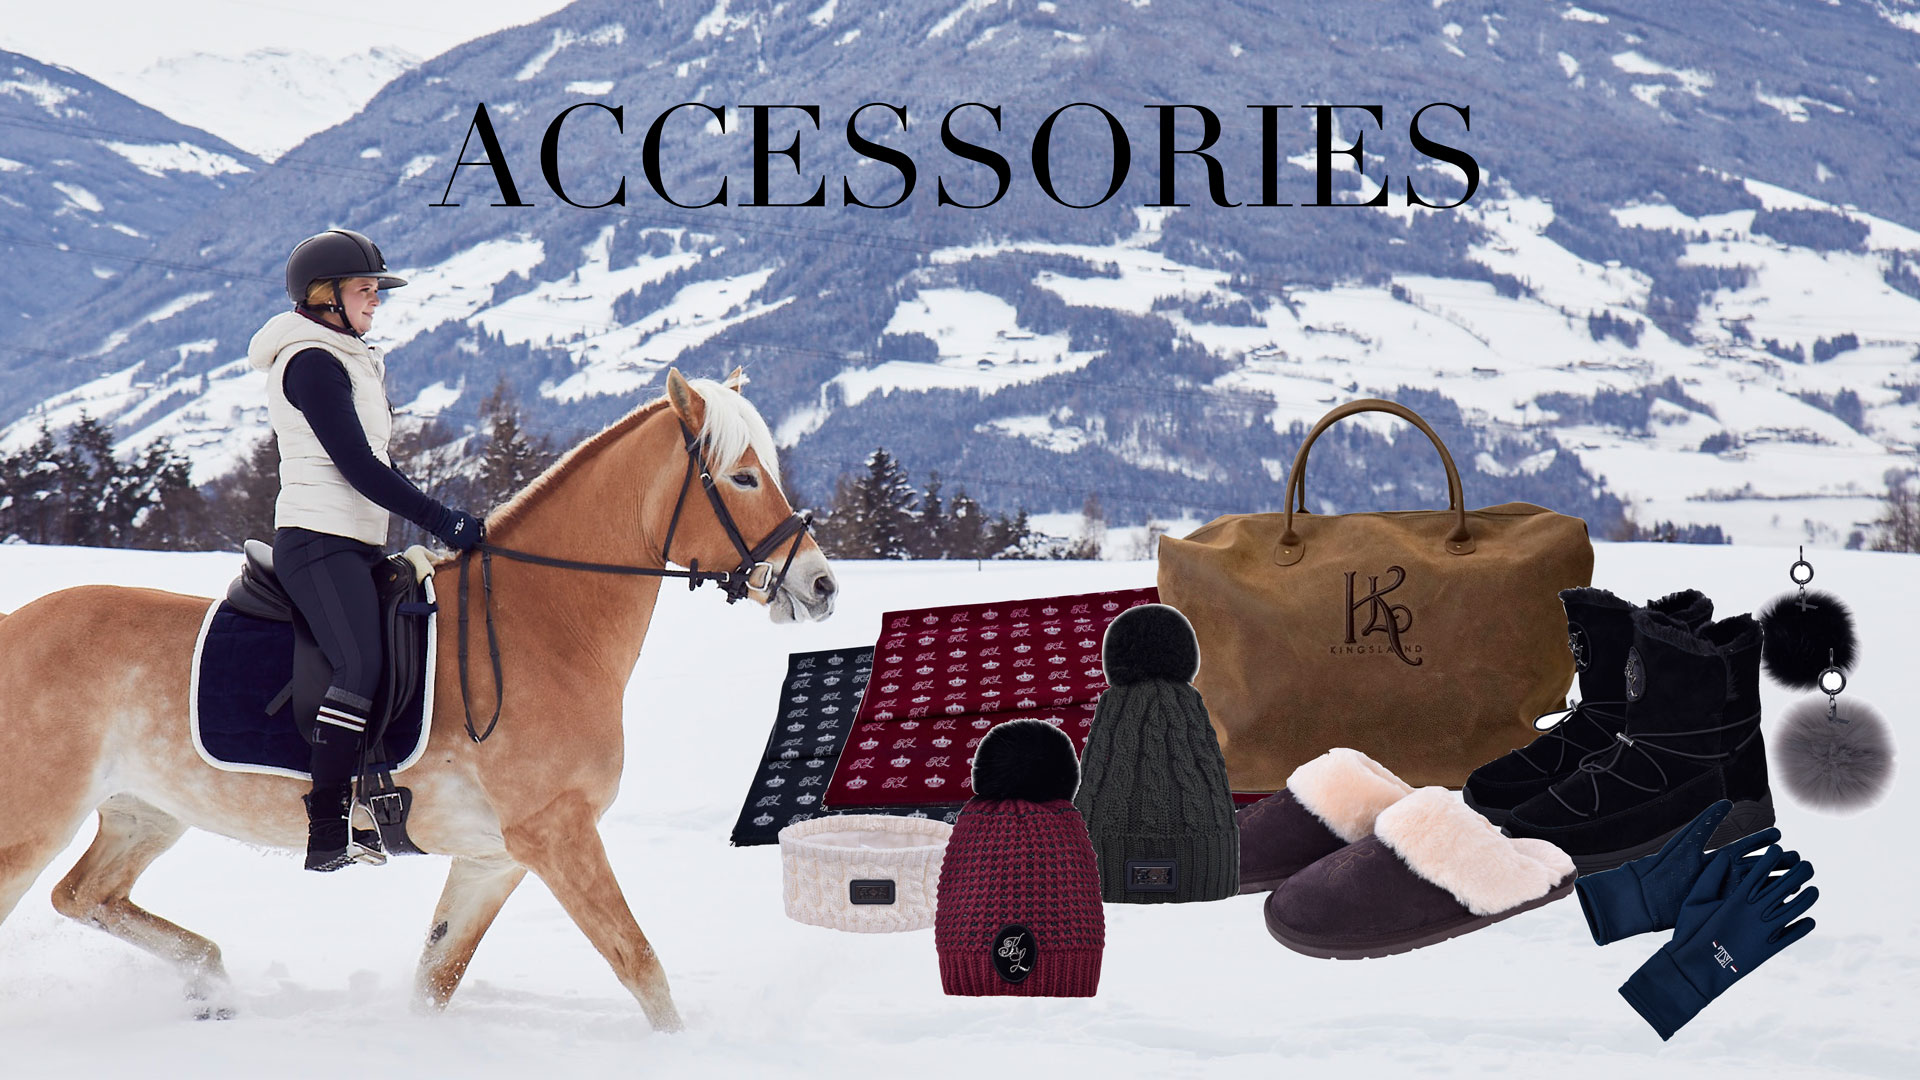 Christmas gifts idea – Accessories